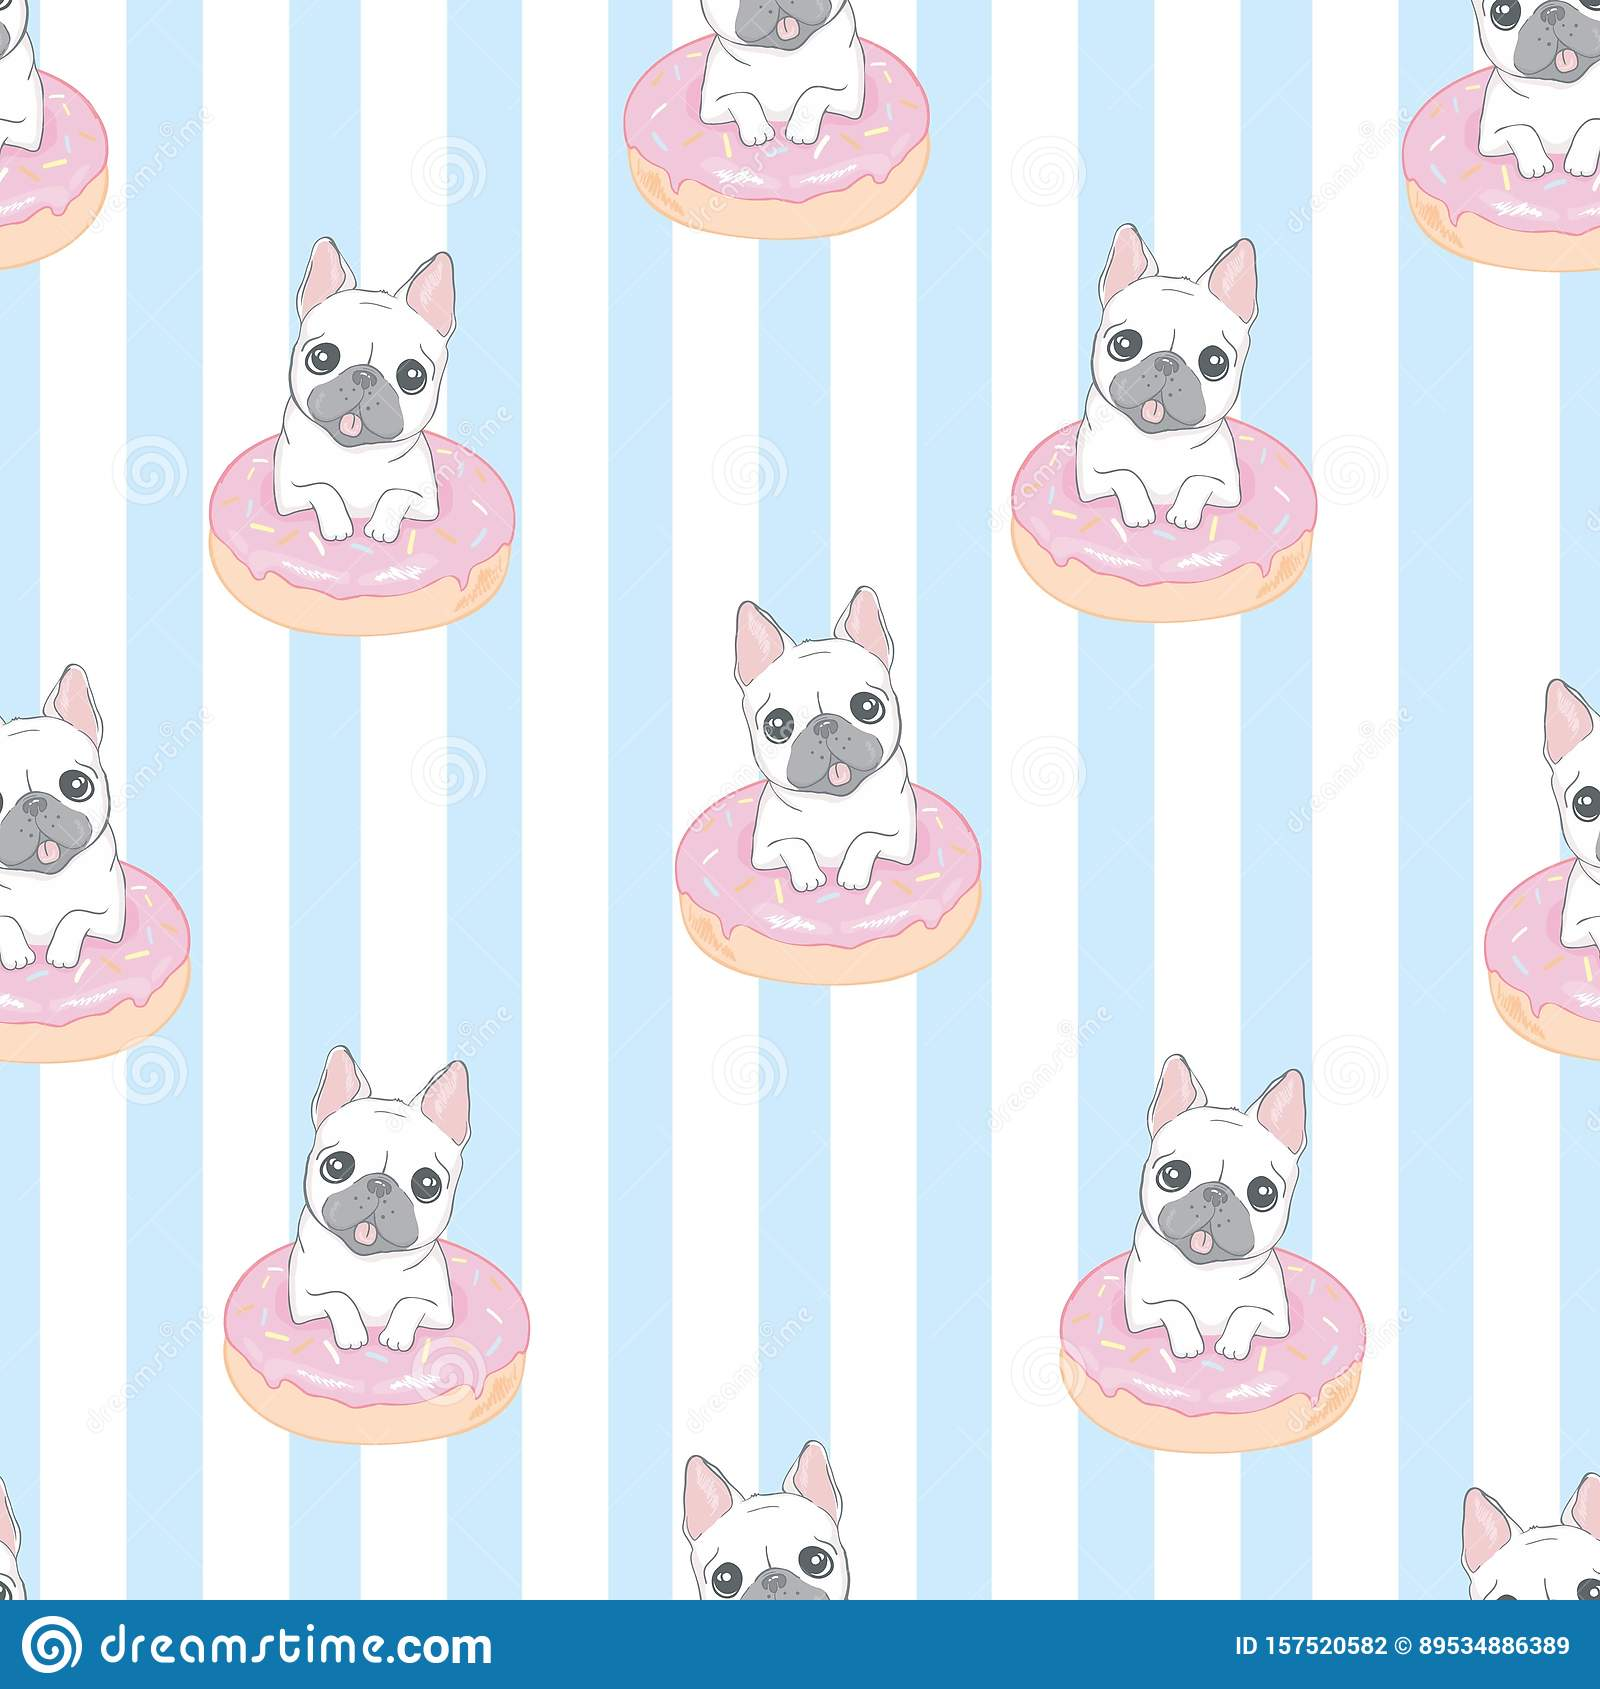 Dog Seamless Pattern French Bulldog Paw Vector Repeat Background Tile Cartoon Wallpaper Isolated Black Stock Vector Illustration Of Doodle Repeat 157520582